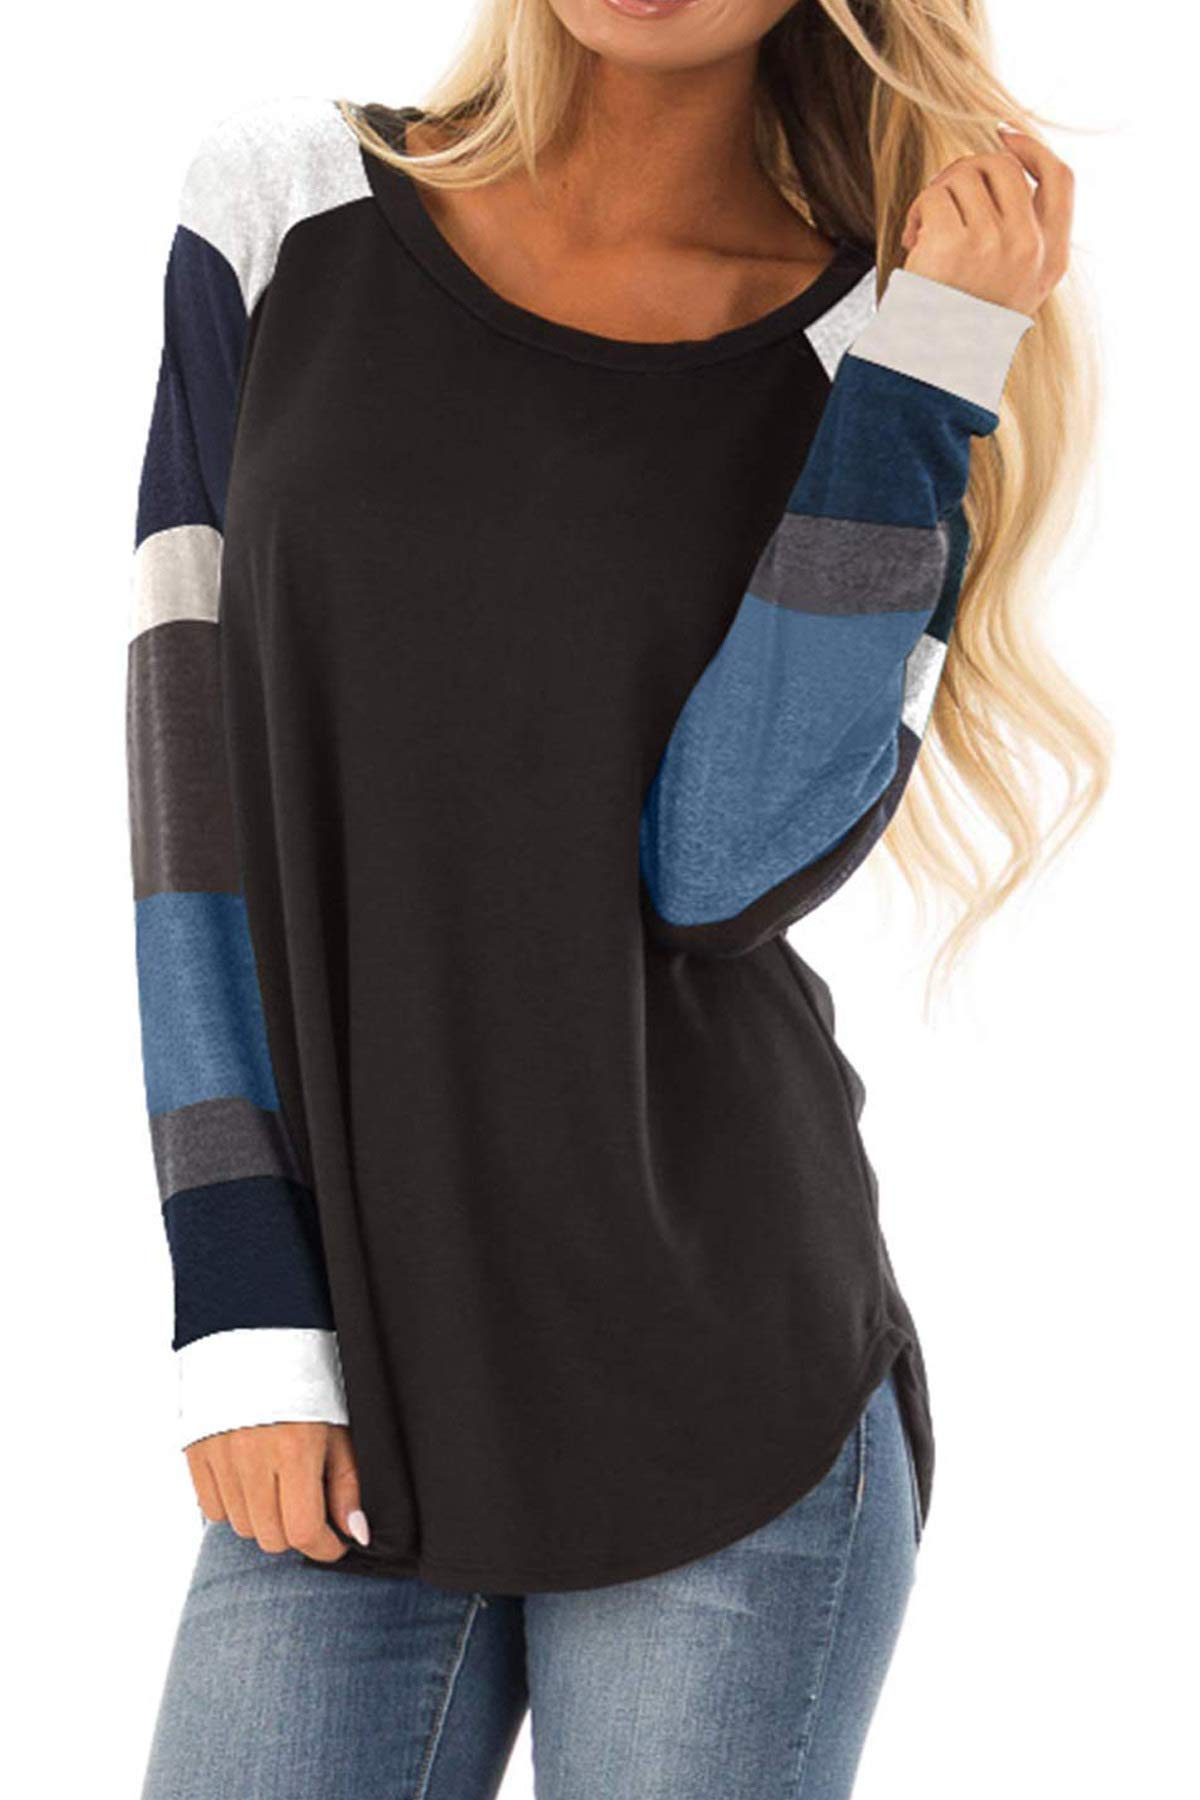 AMCLOS Womens O-Neck Shirts Striped Tops Tunic Blouses Casual Long Sleeve (M, A-Black)